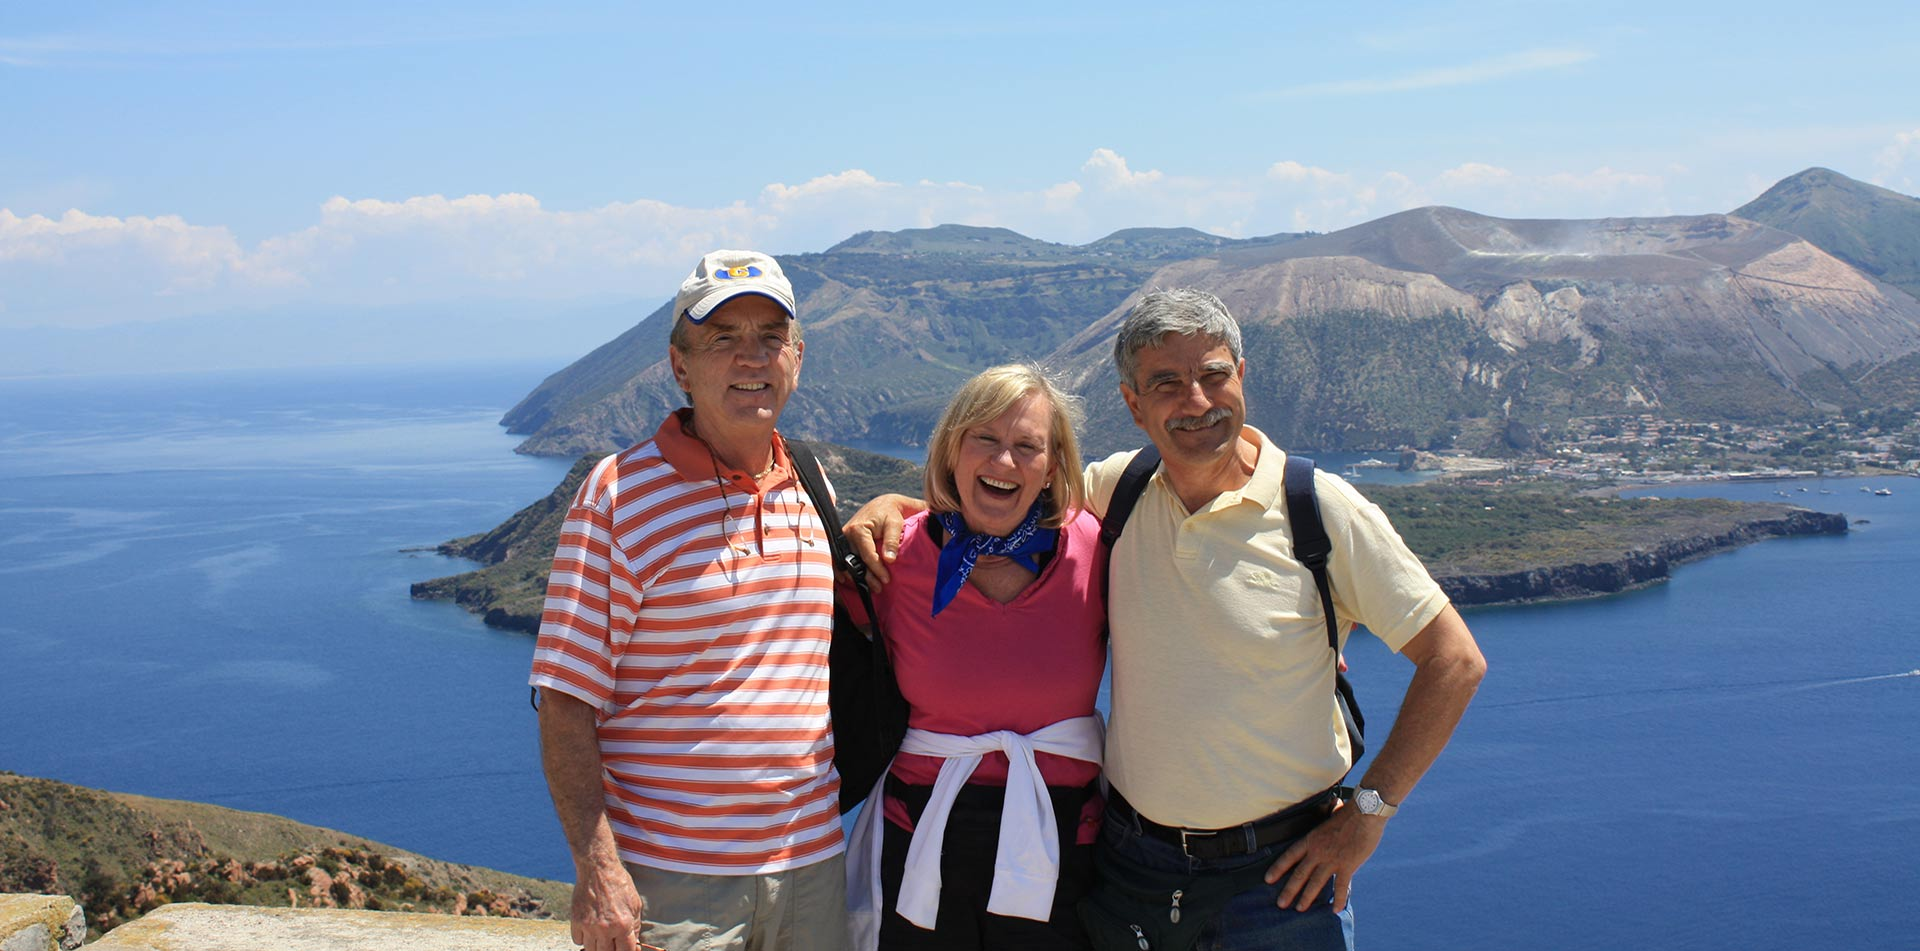 Europe Italy Sicily travelers with local guide on Aeolian Islands overlooking the sea - luxury vacation destinations